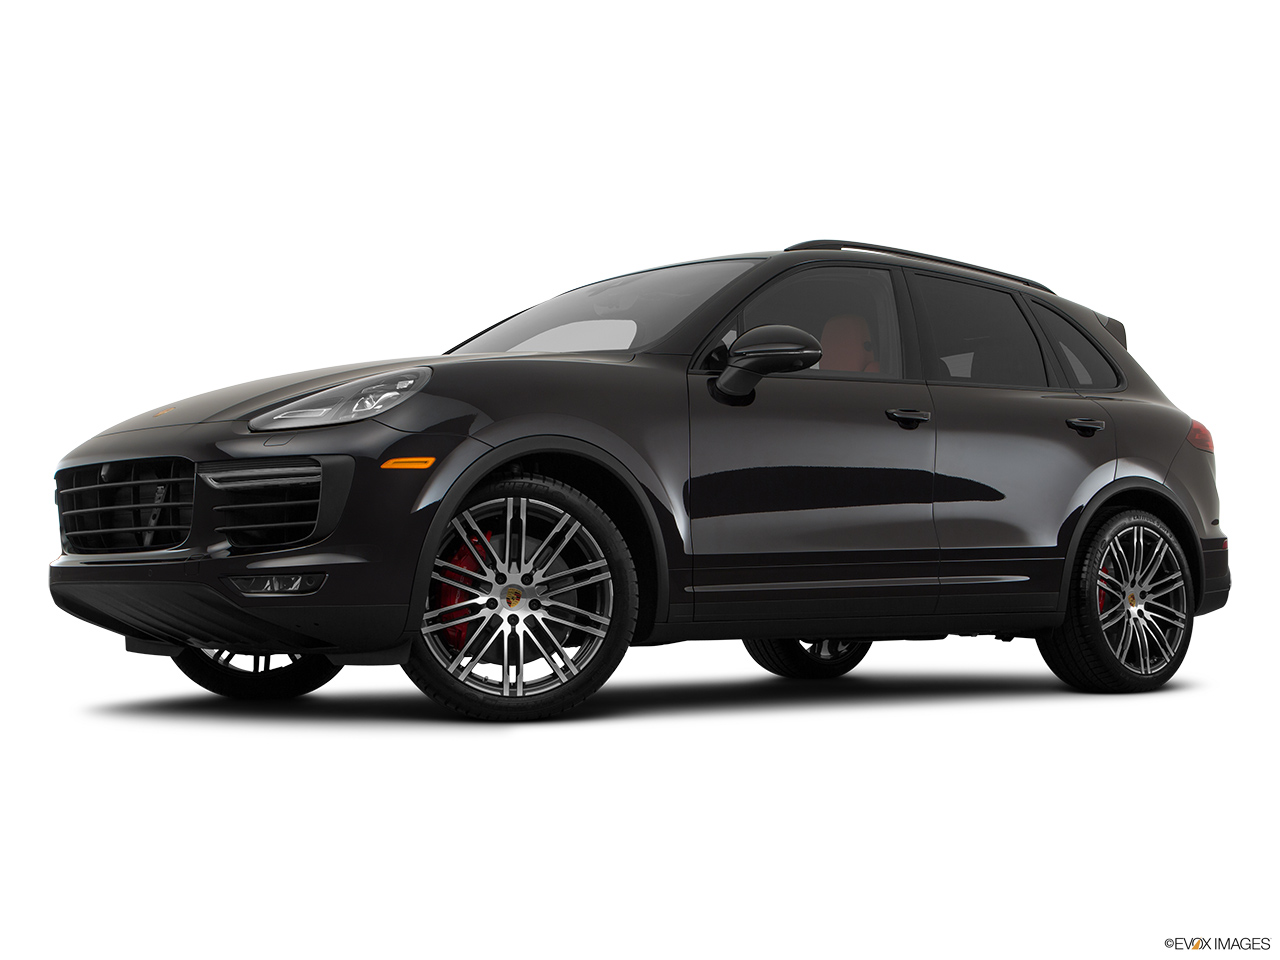 car pictures list for porsche cayenne 2017 turbo saudi. Black Bedroom Furniture Sets. Home Design Ideas